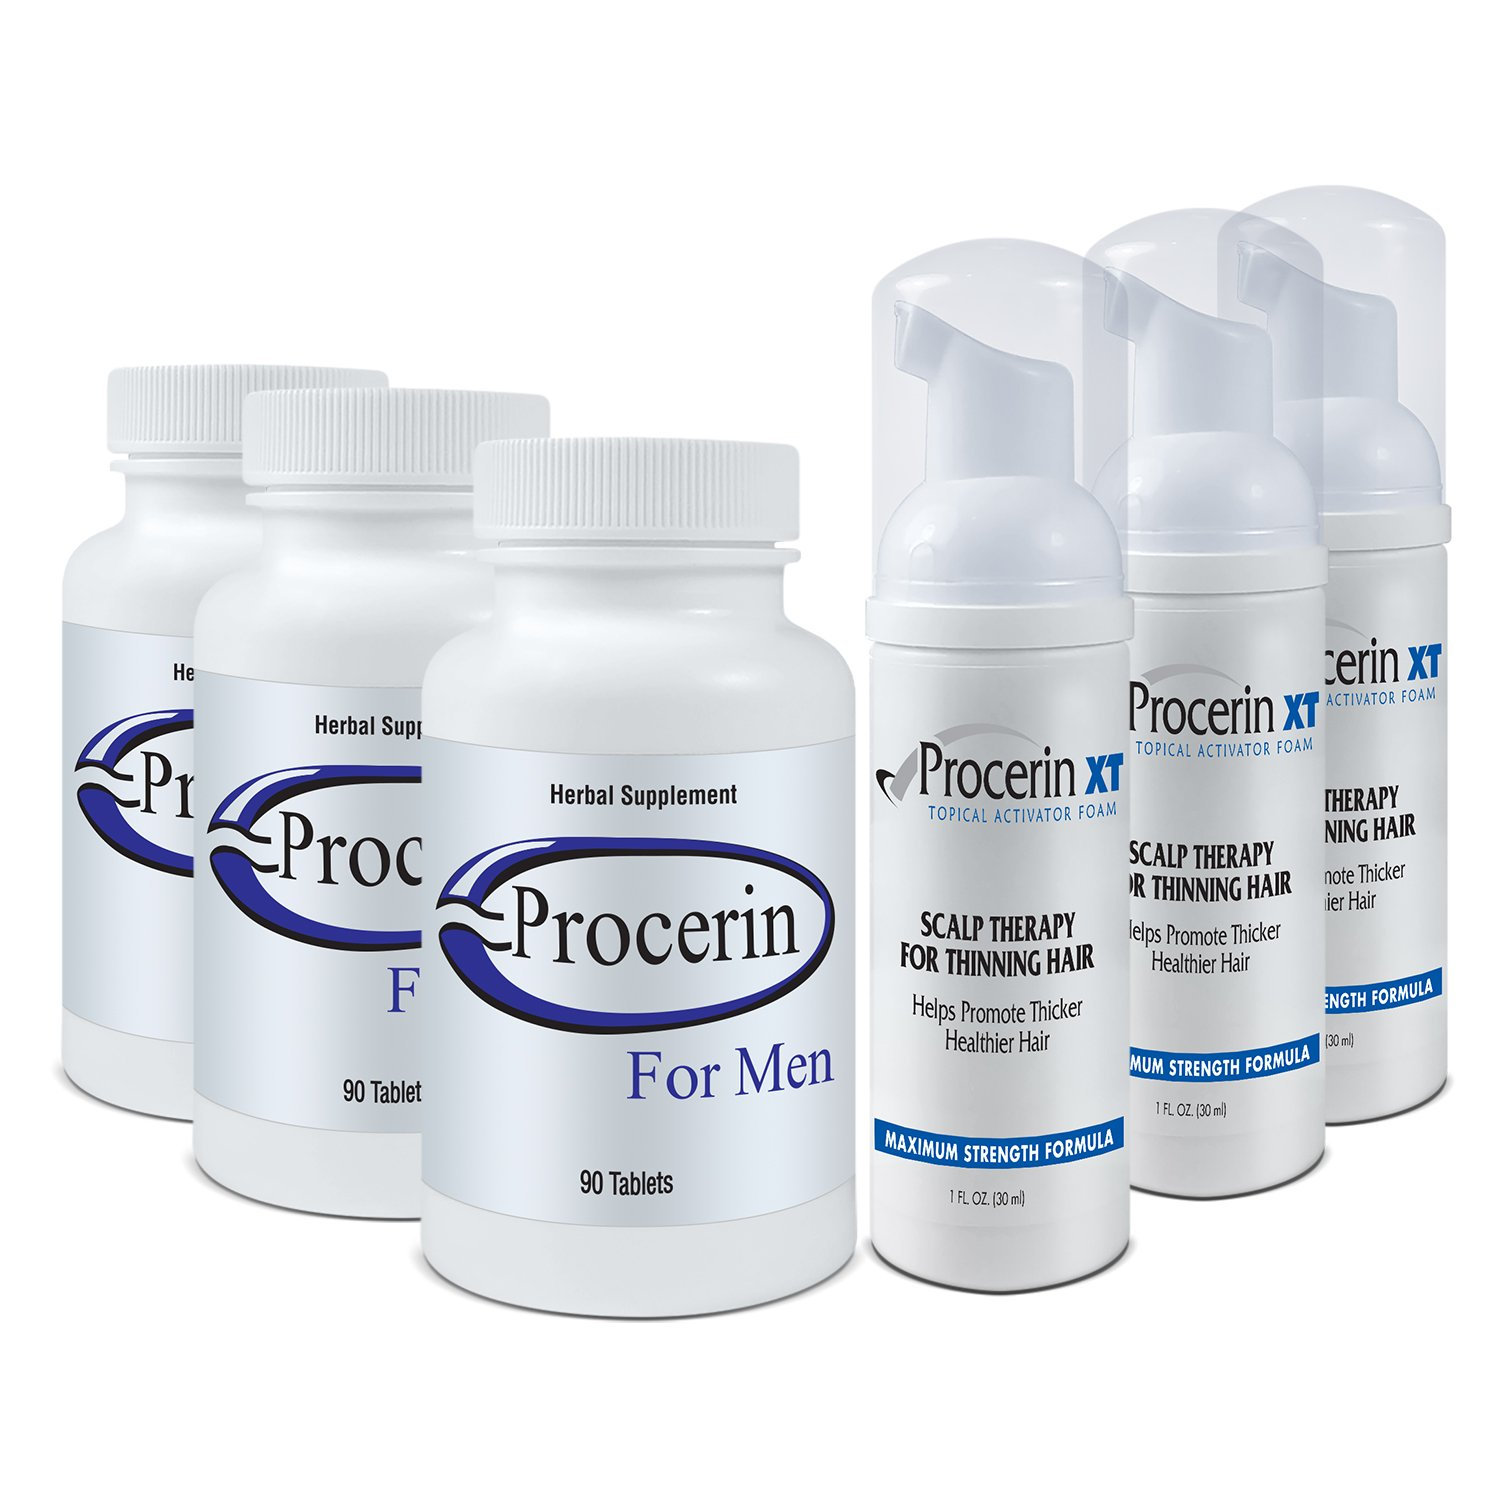 Procerin Combo Pack - 3 Month Supply by Procerin (Image #1)